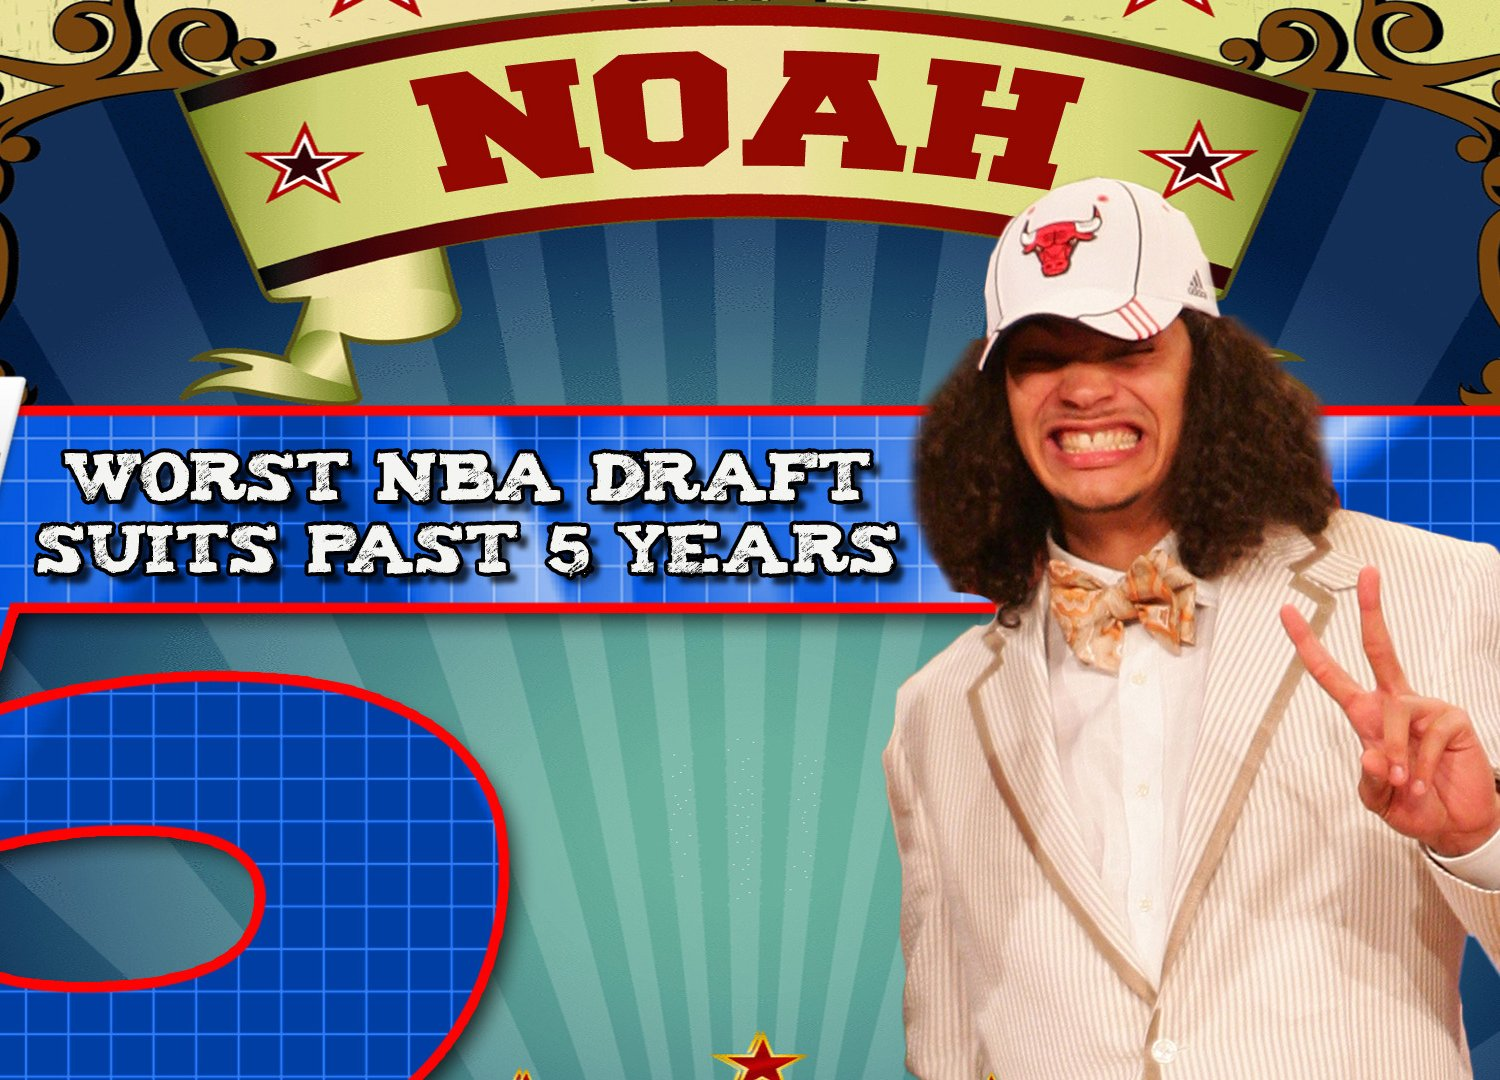 br5 5 worst nba draft suits of past 5 years ft joakim